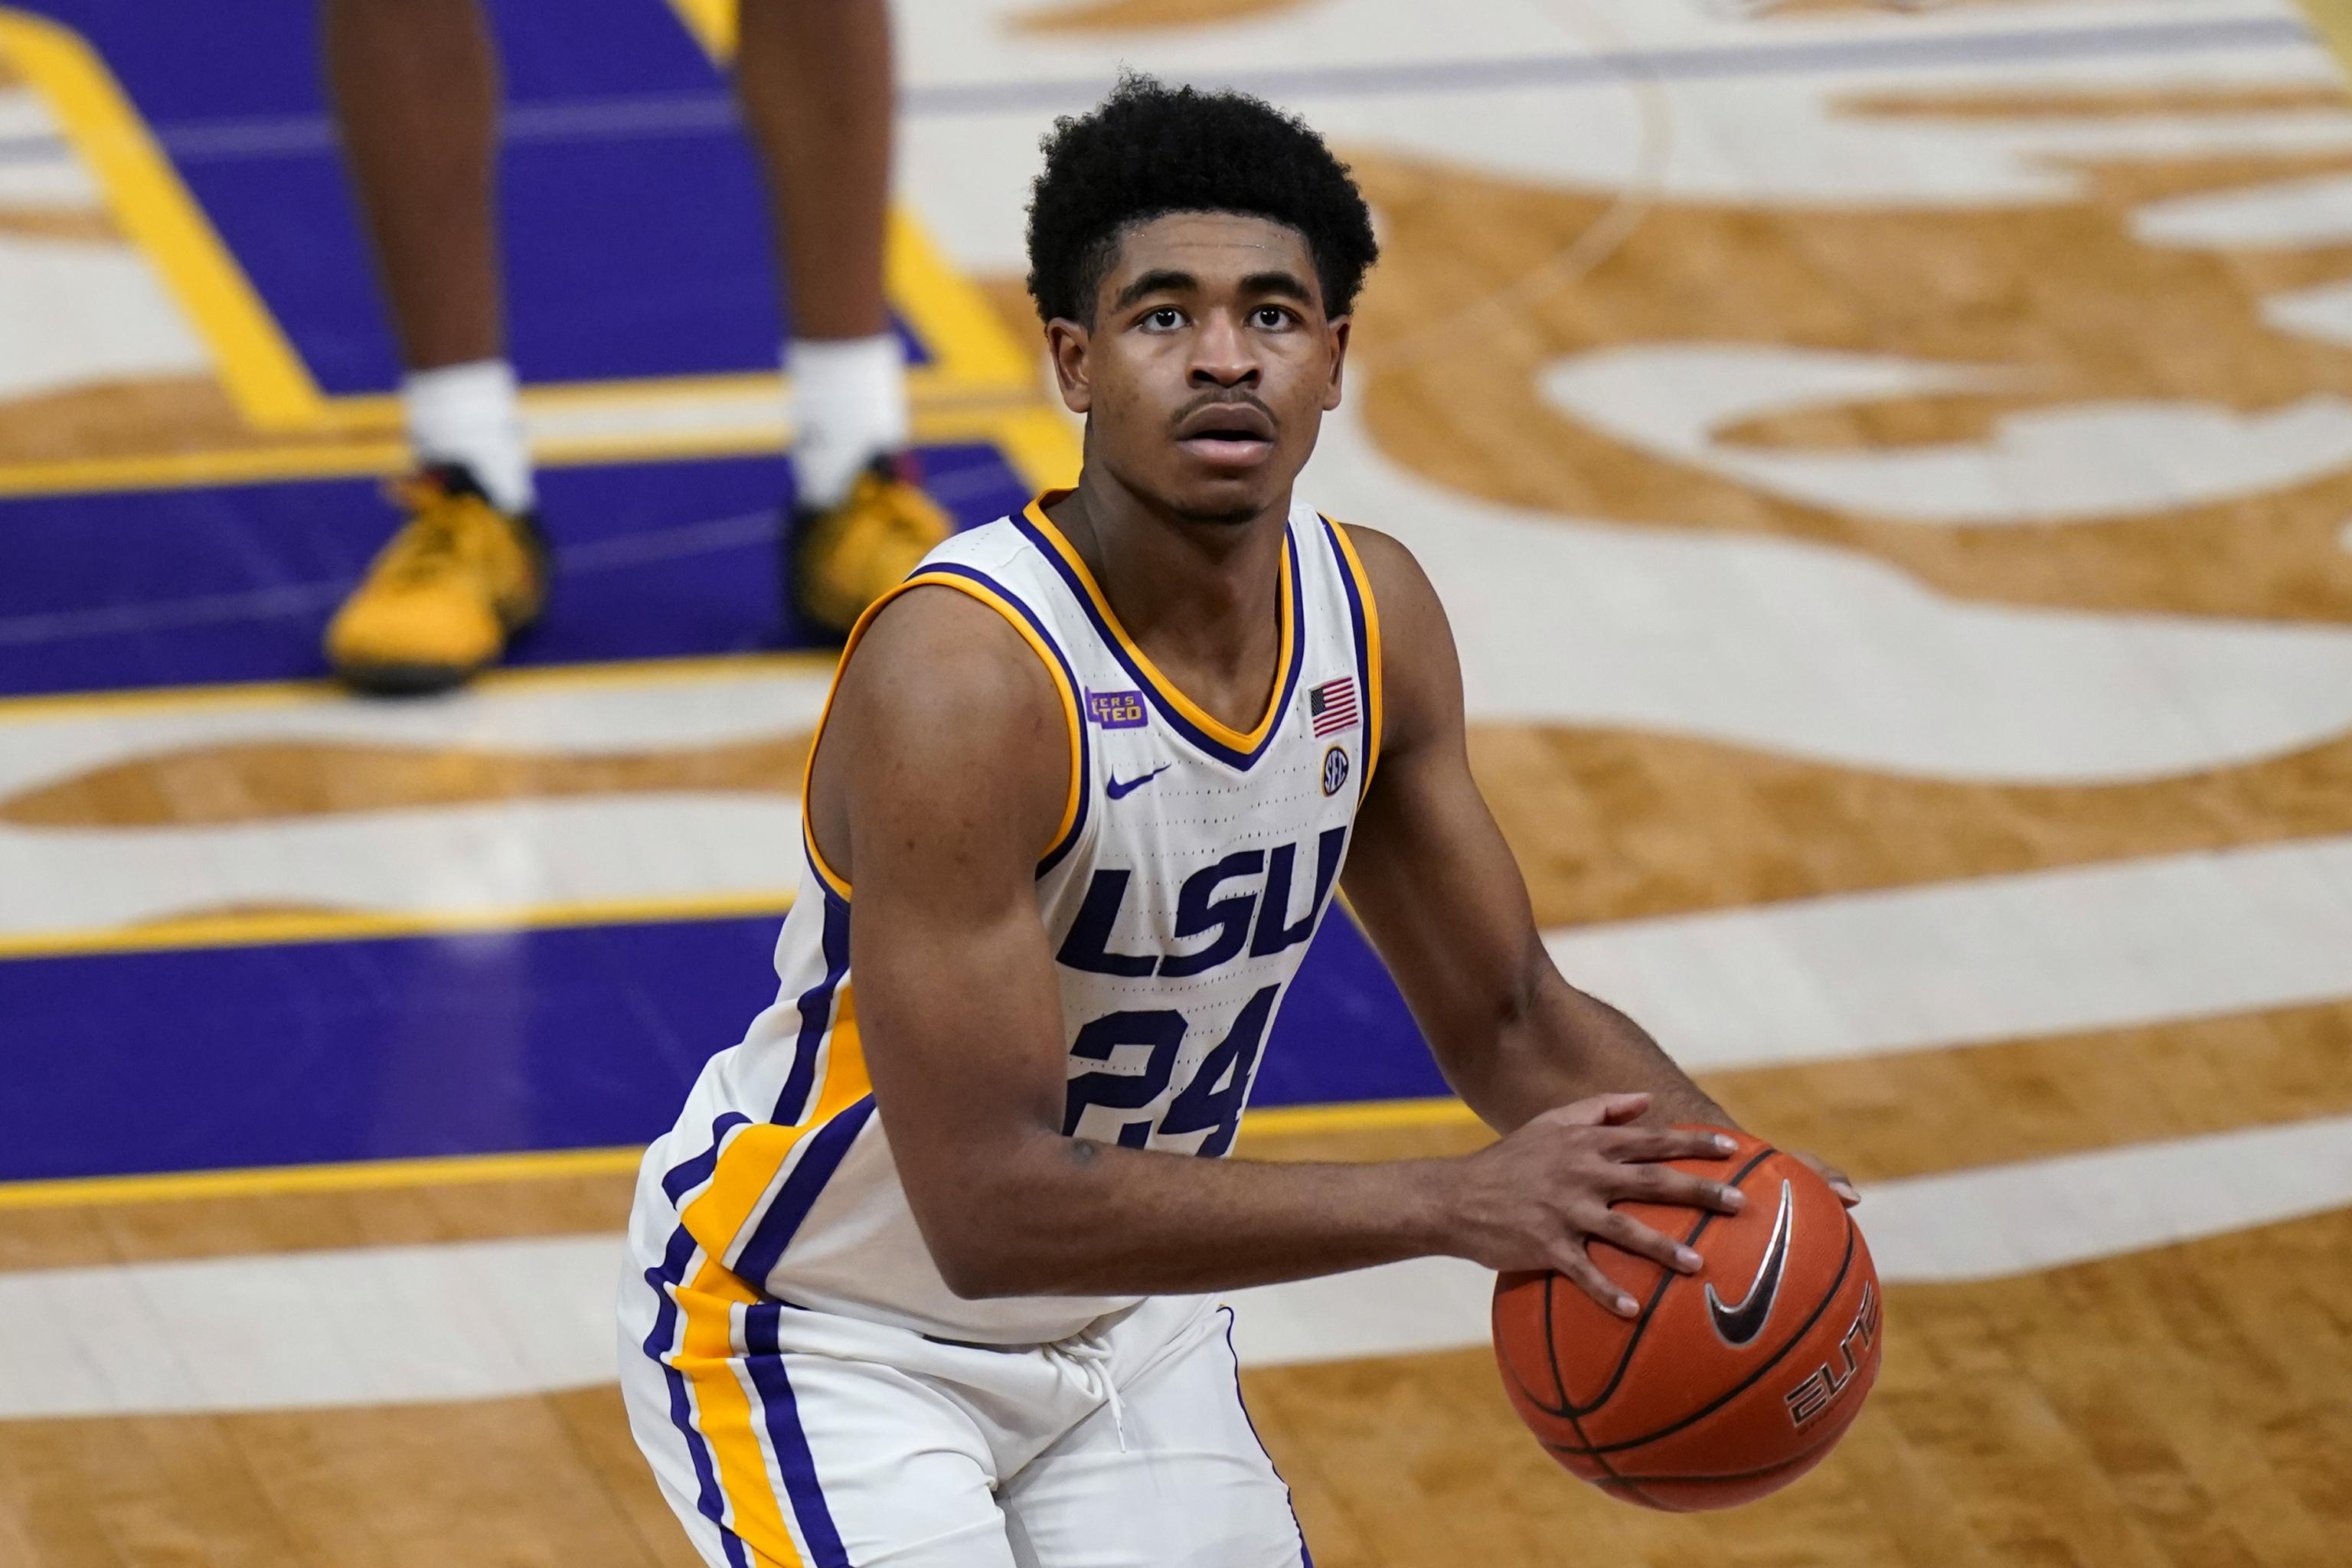 LSU's Cameron Thomas to Enter 2021 NBA Draft, Hire Agent | Bleacher Report  | Latest News, Videos and Highlights